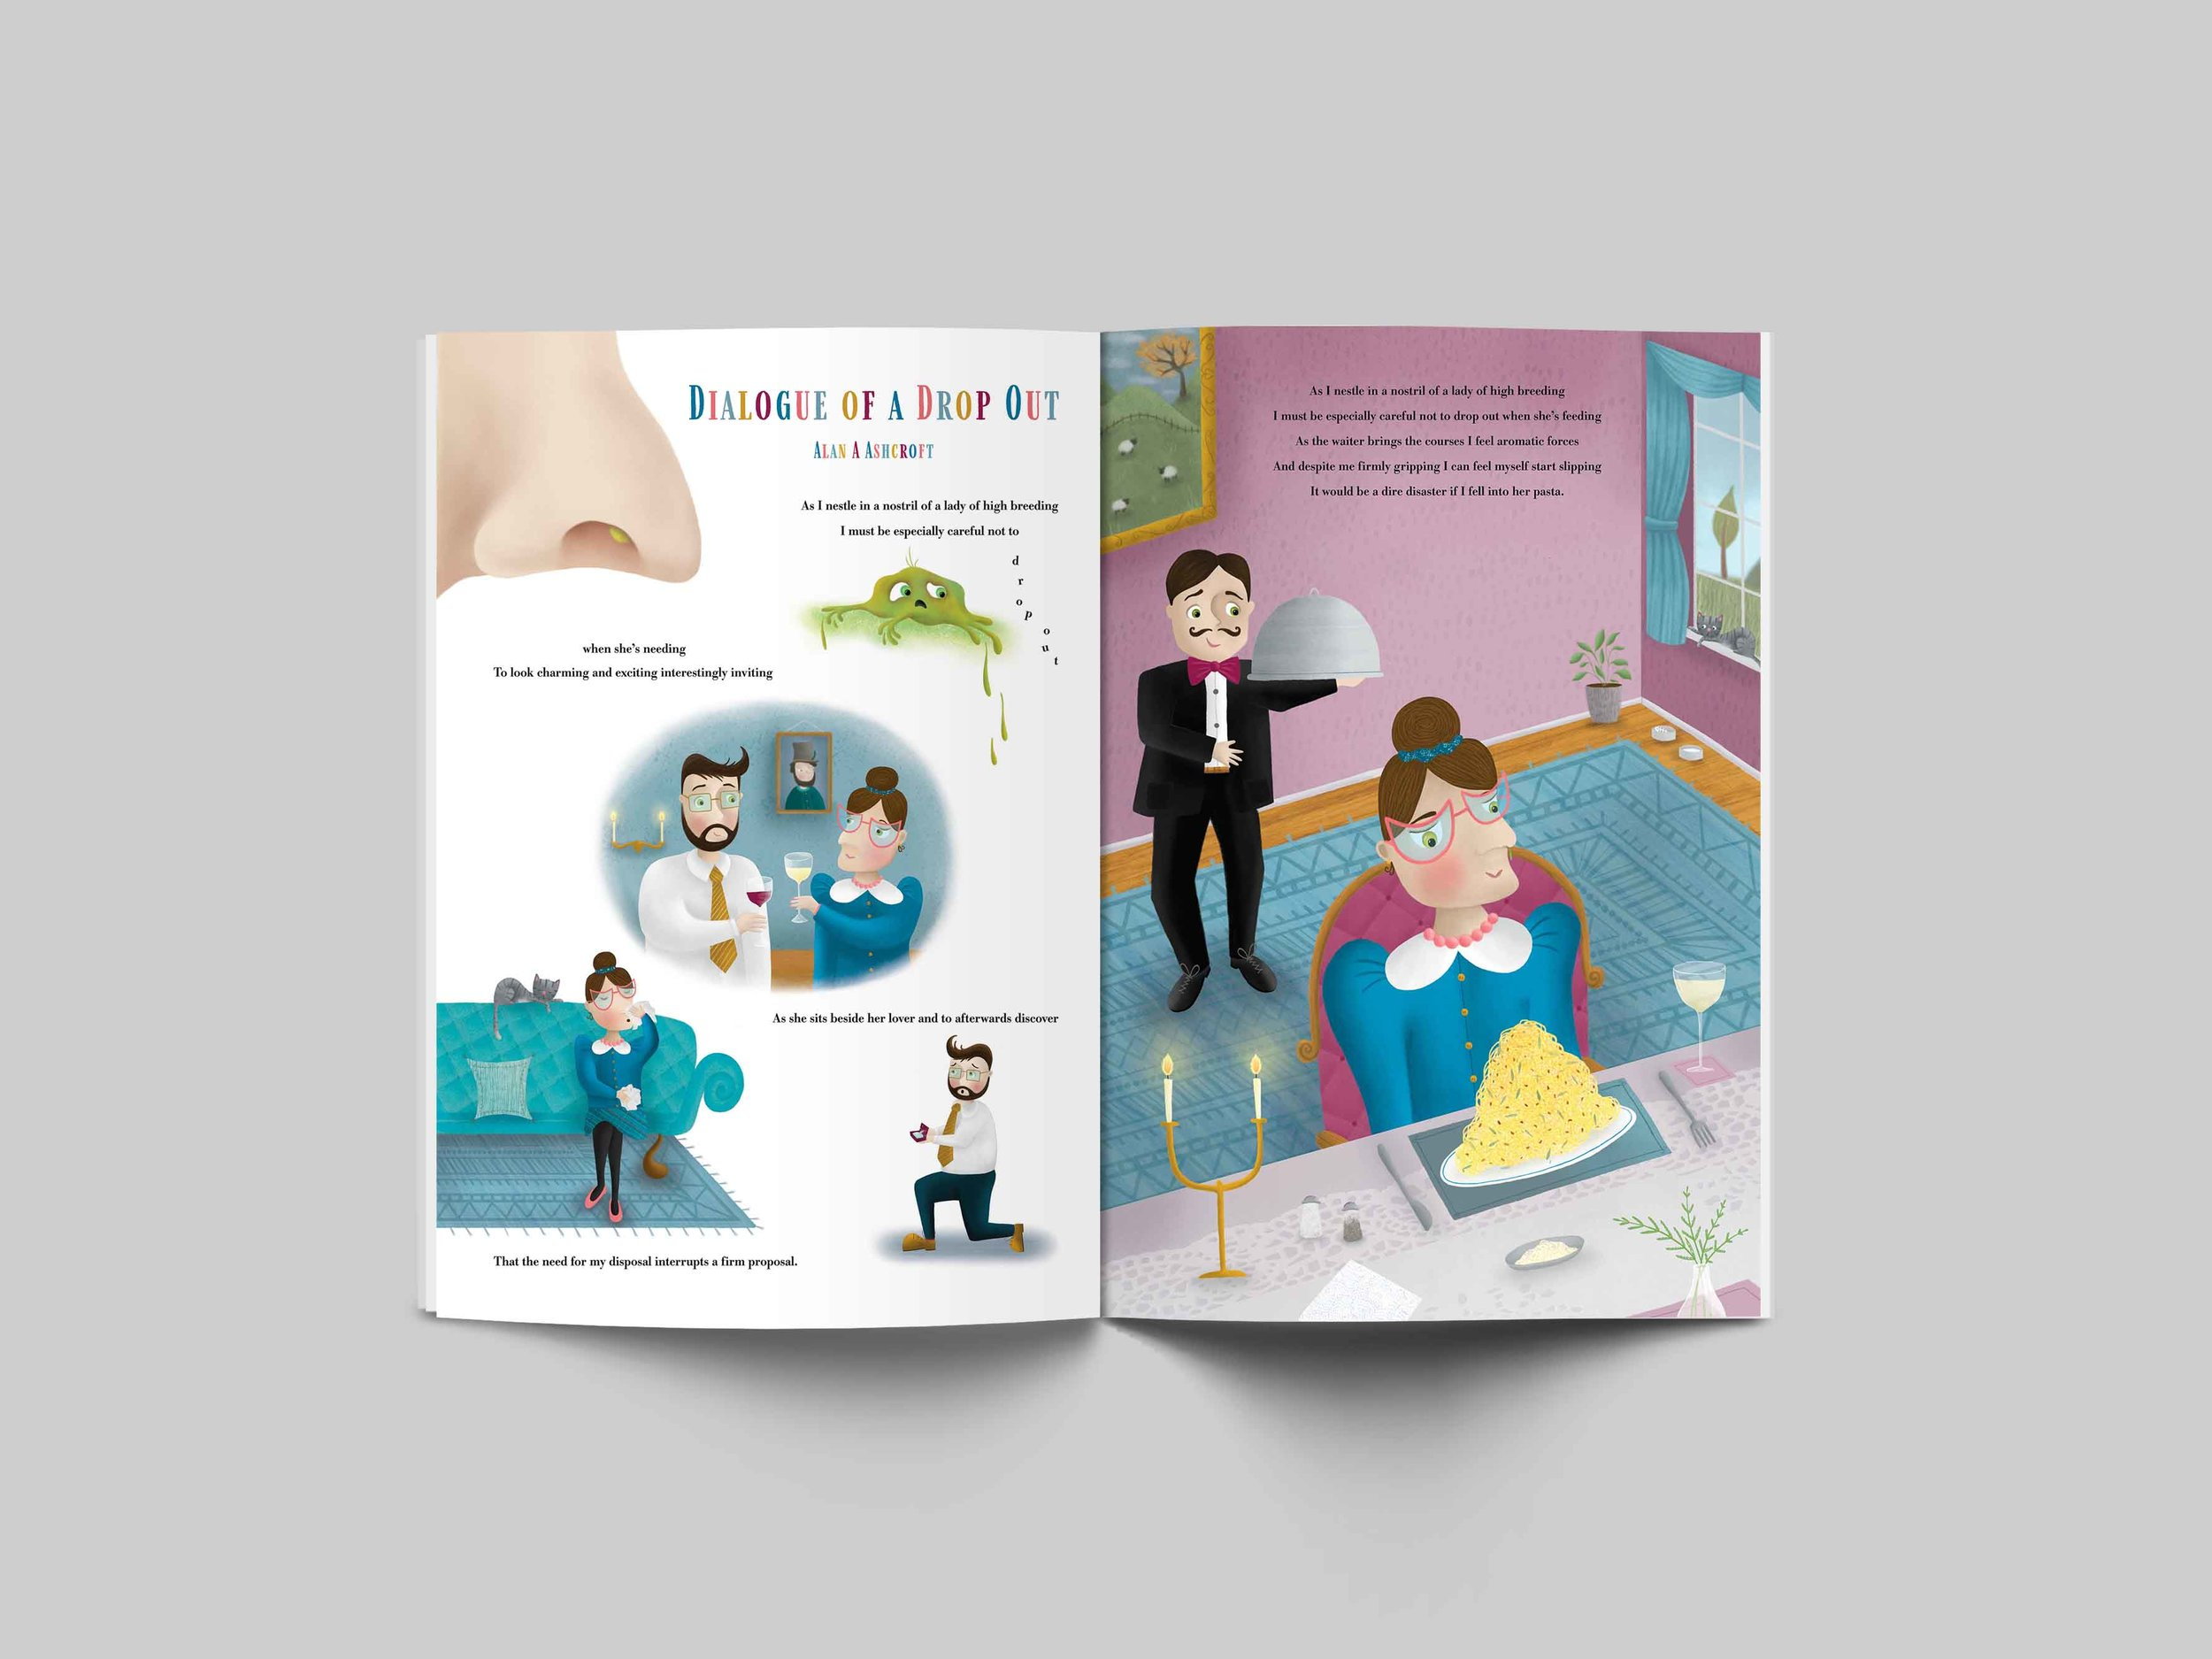 An example spread showing the illustrations used in the context of a book.